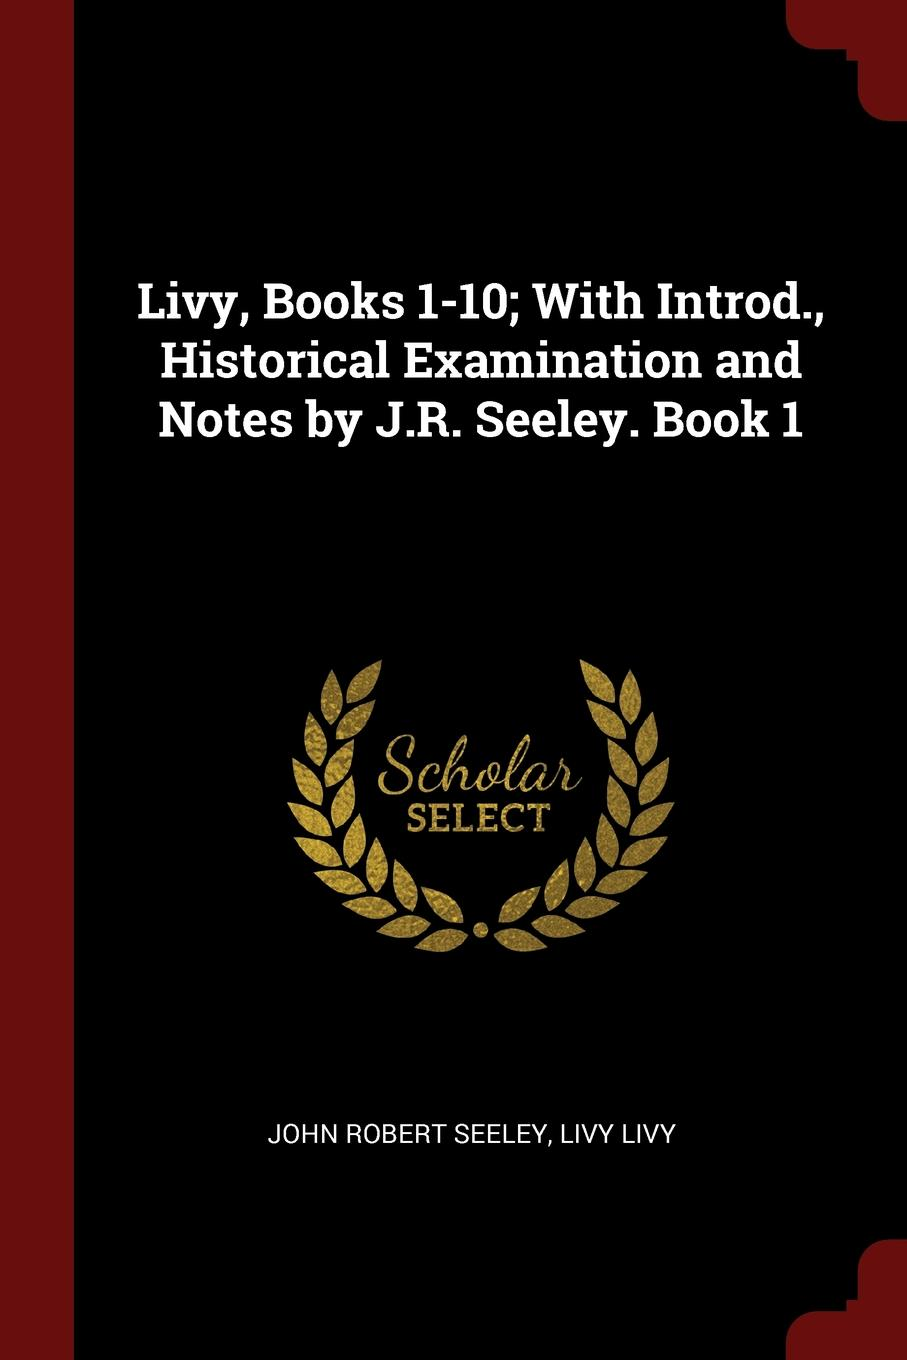 John Robert Seeley, Livy Livy Livy, Books 1-10; With Introd., Historical Examination and Notes by J.R. Seeley. Book 1